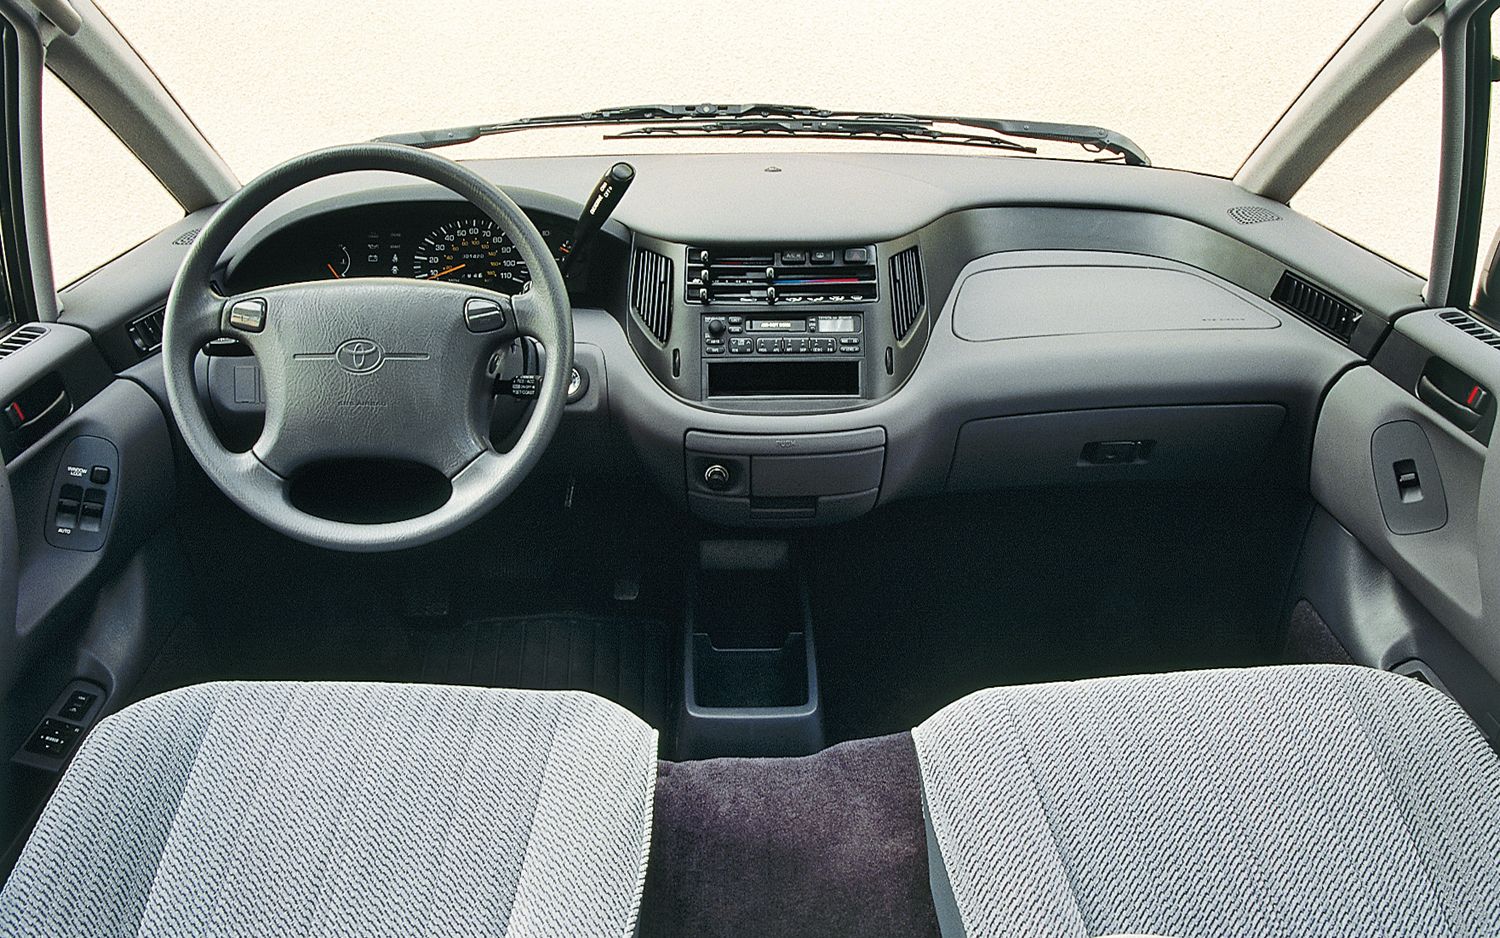 1994 Toyota Previa Information And Photos Zombiedrive